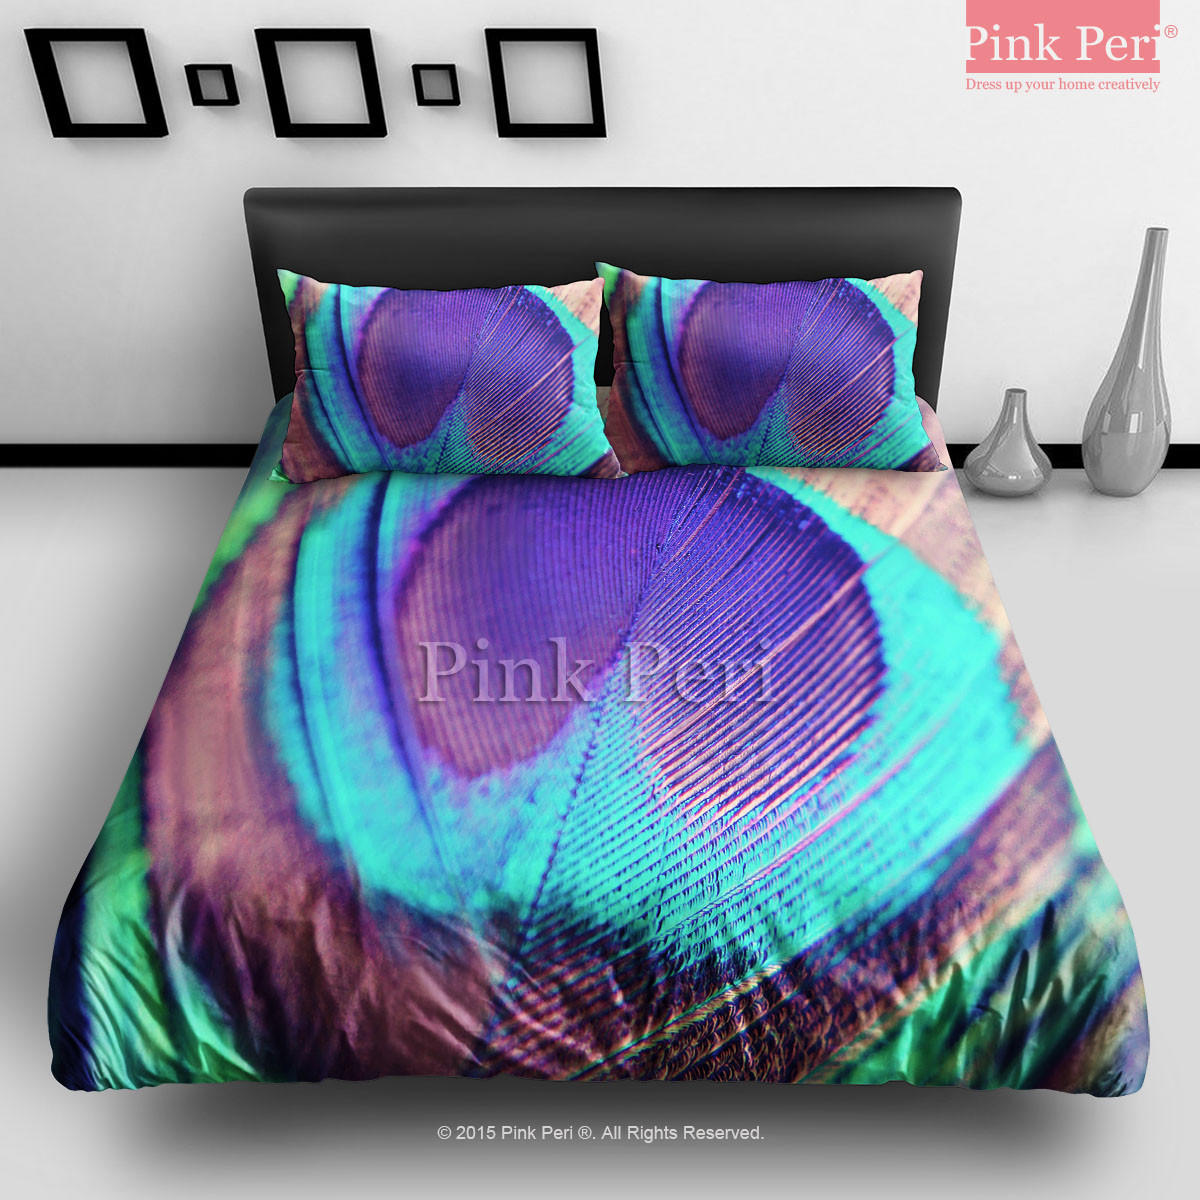 Peacock Feathers Galaxy Bedding Sets Home From Pink Peri